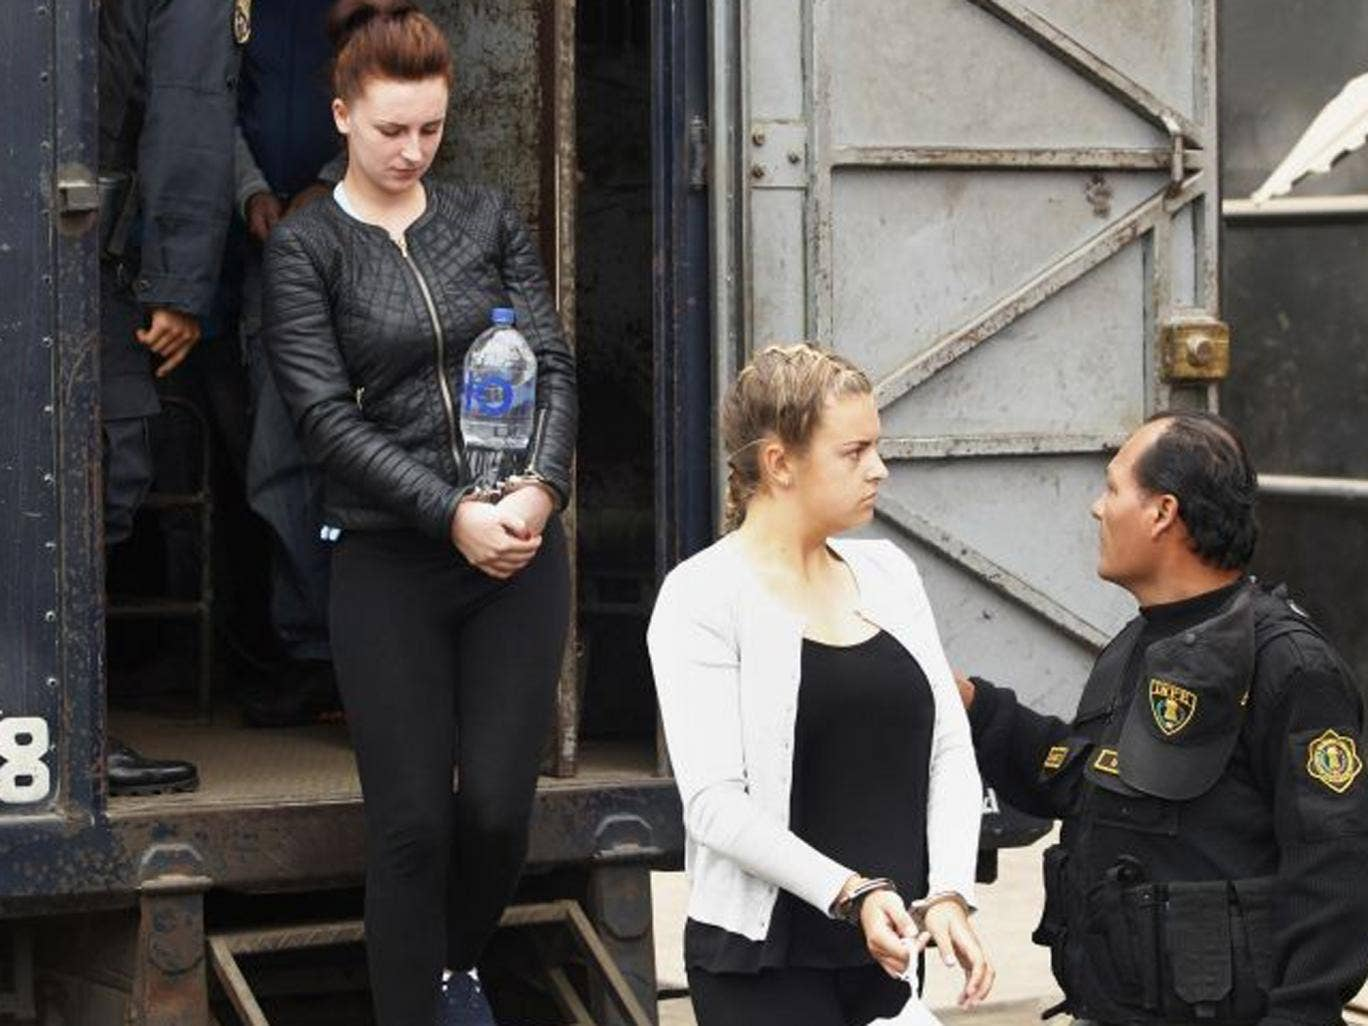 Melissa Reid (R) and Michaella McCollum Connolly are escorted by police at Sarita Colonia prison in Callao